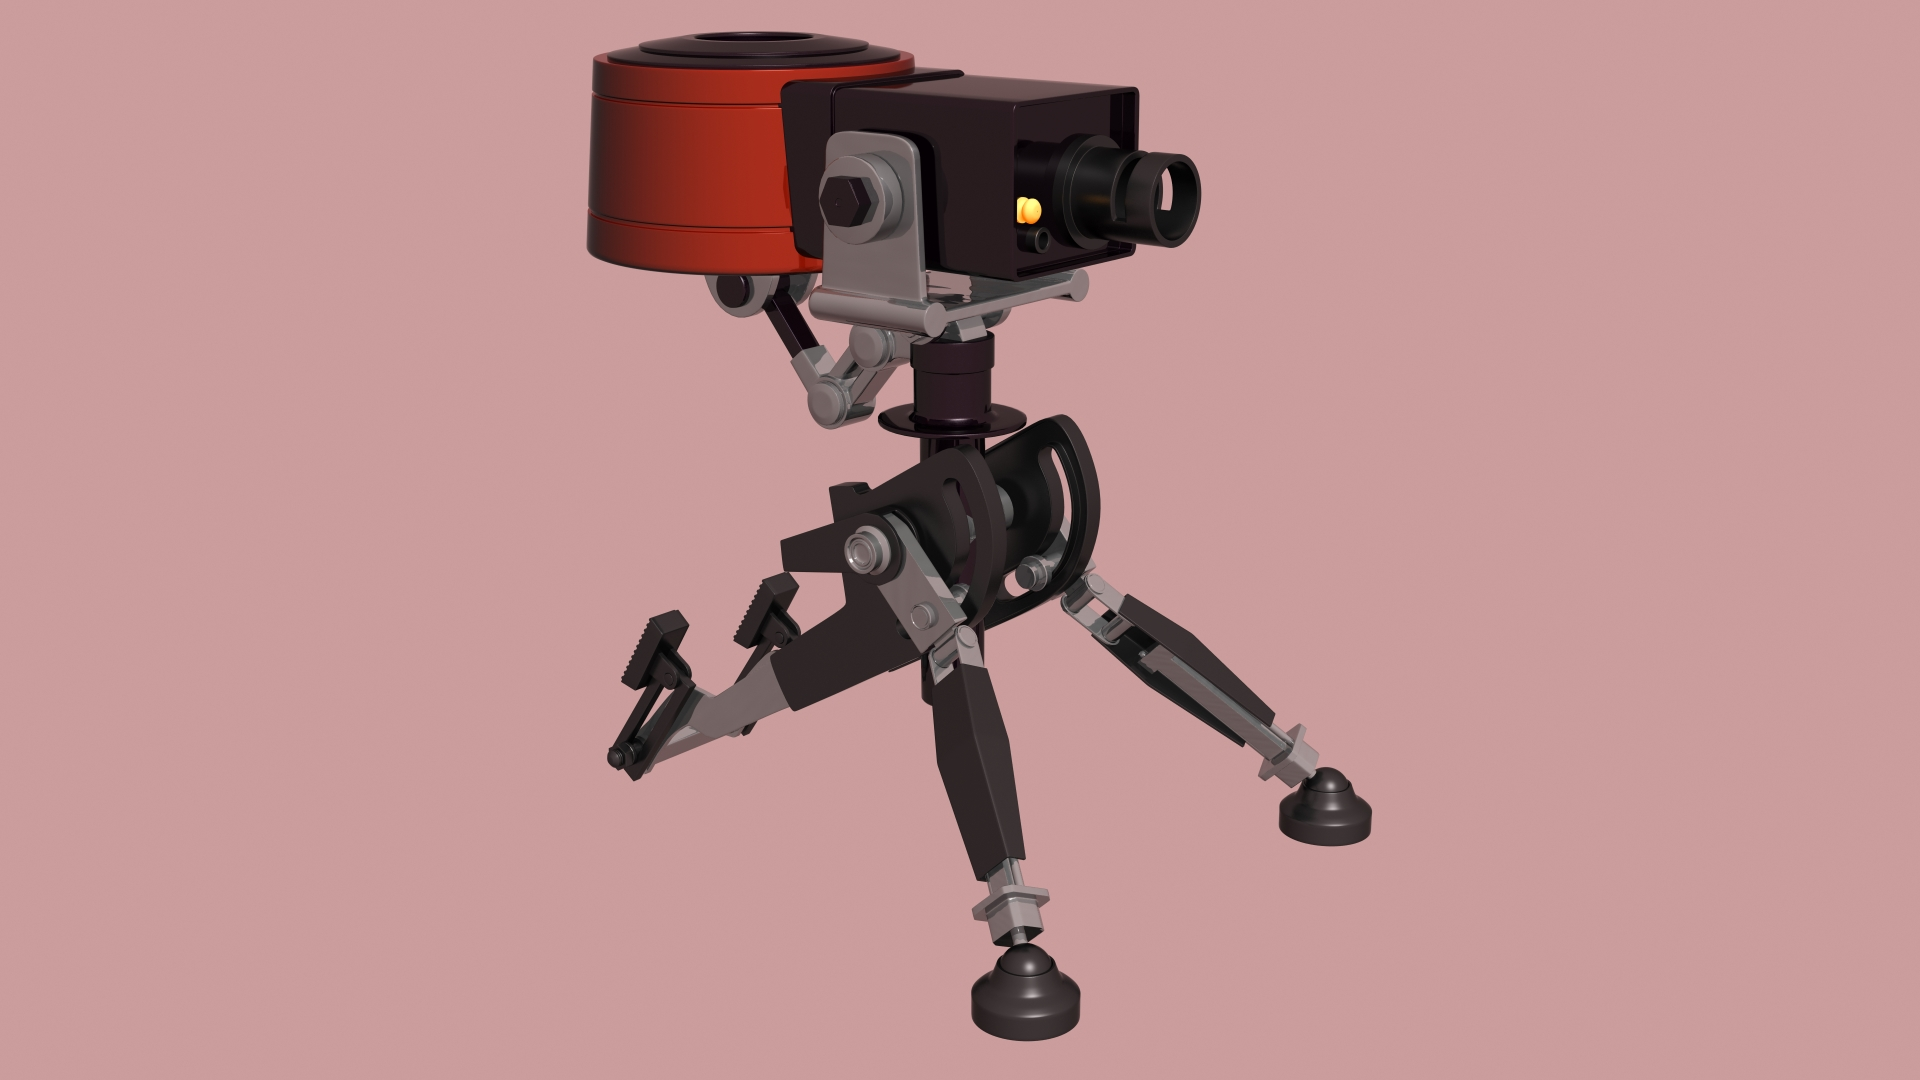 Tf2 Sentry Gun Model Tf2 Sentry Gun by